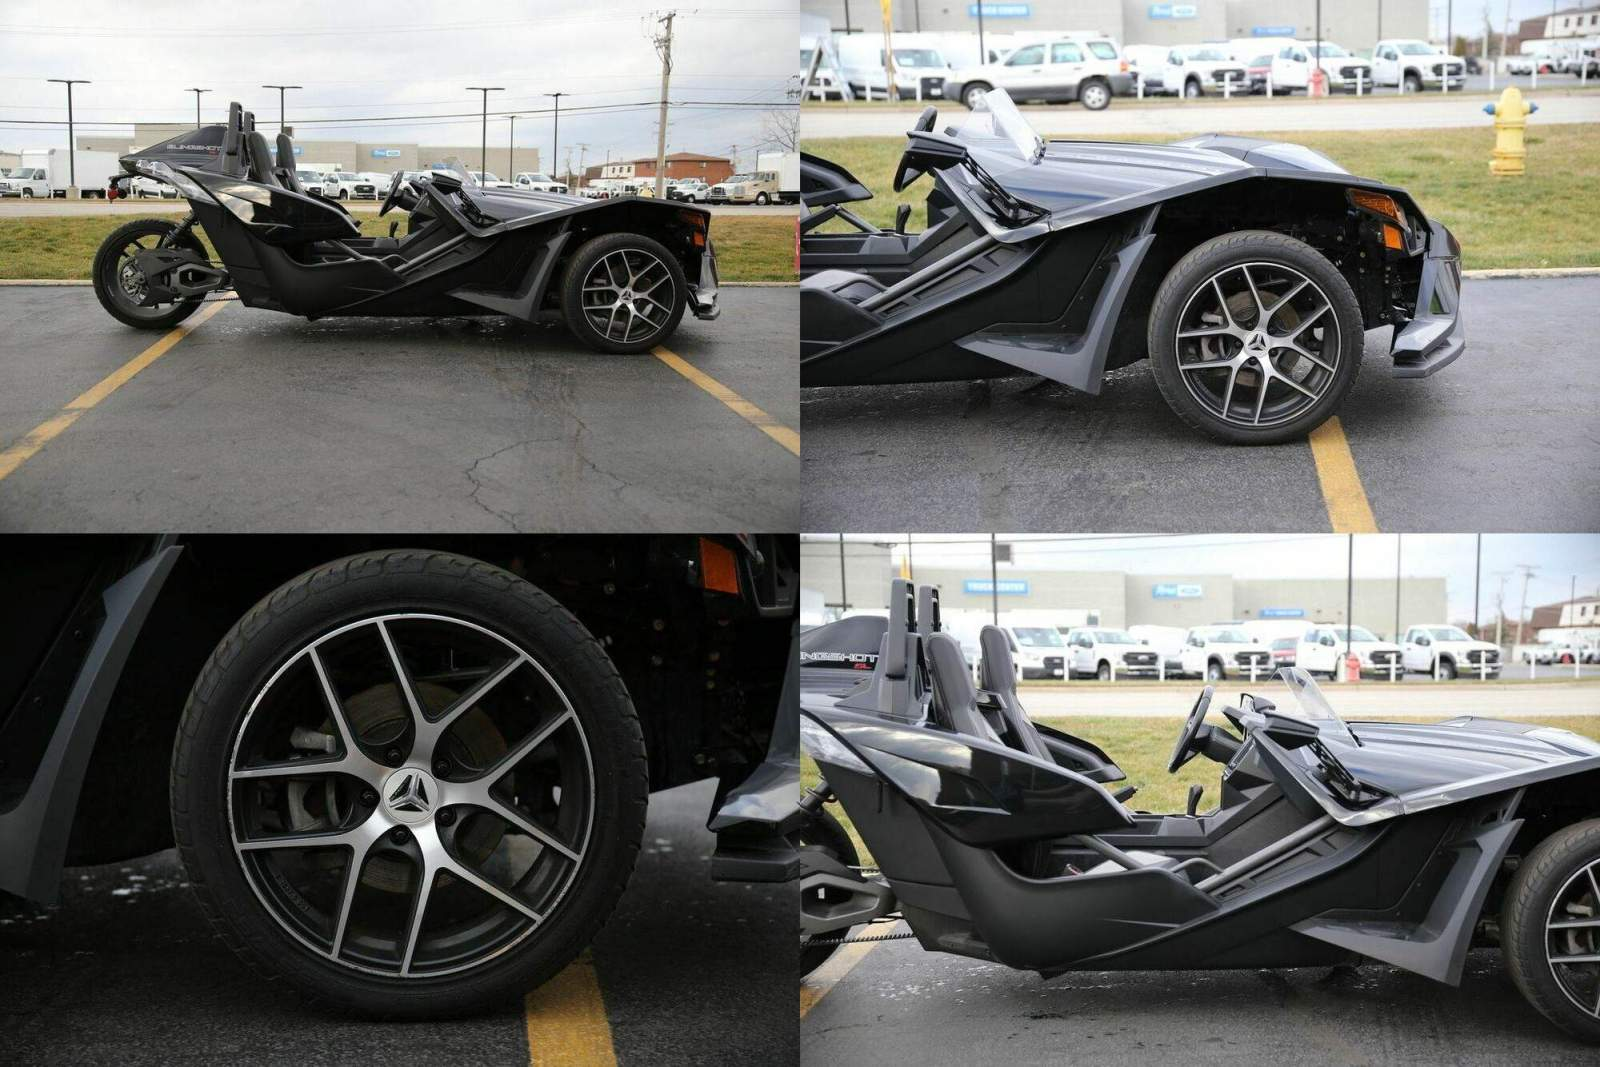 2019 Polaris Slingshot SL   for sale craigslist